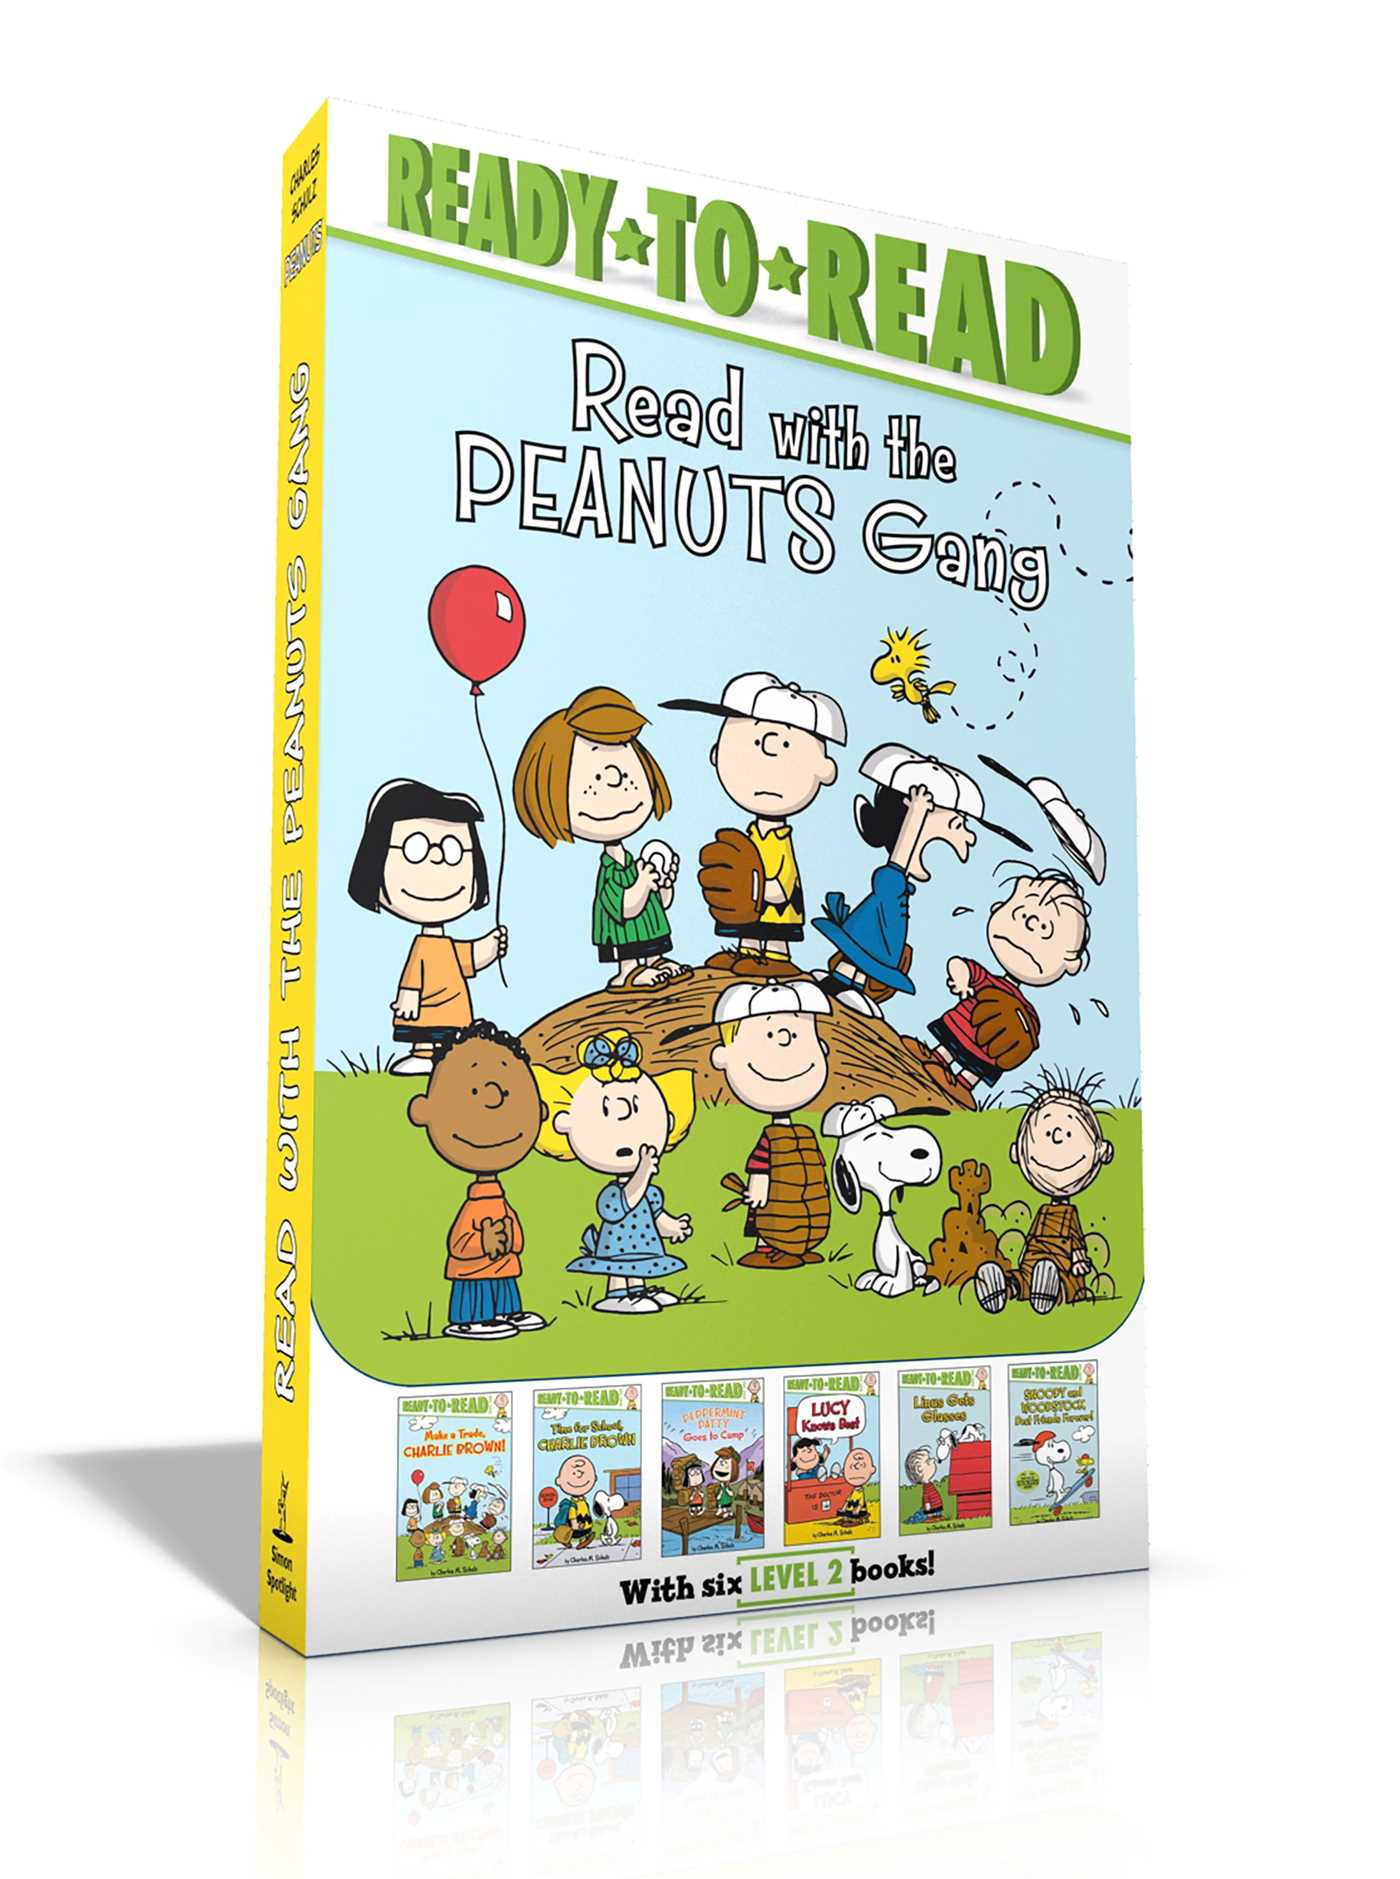 Read with the peanuts gang 9781534409682 hr